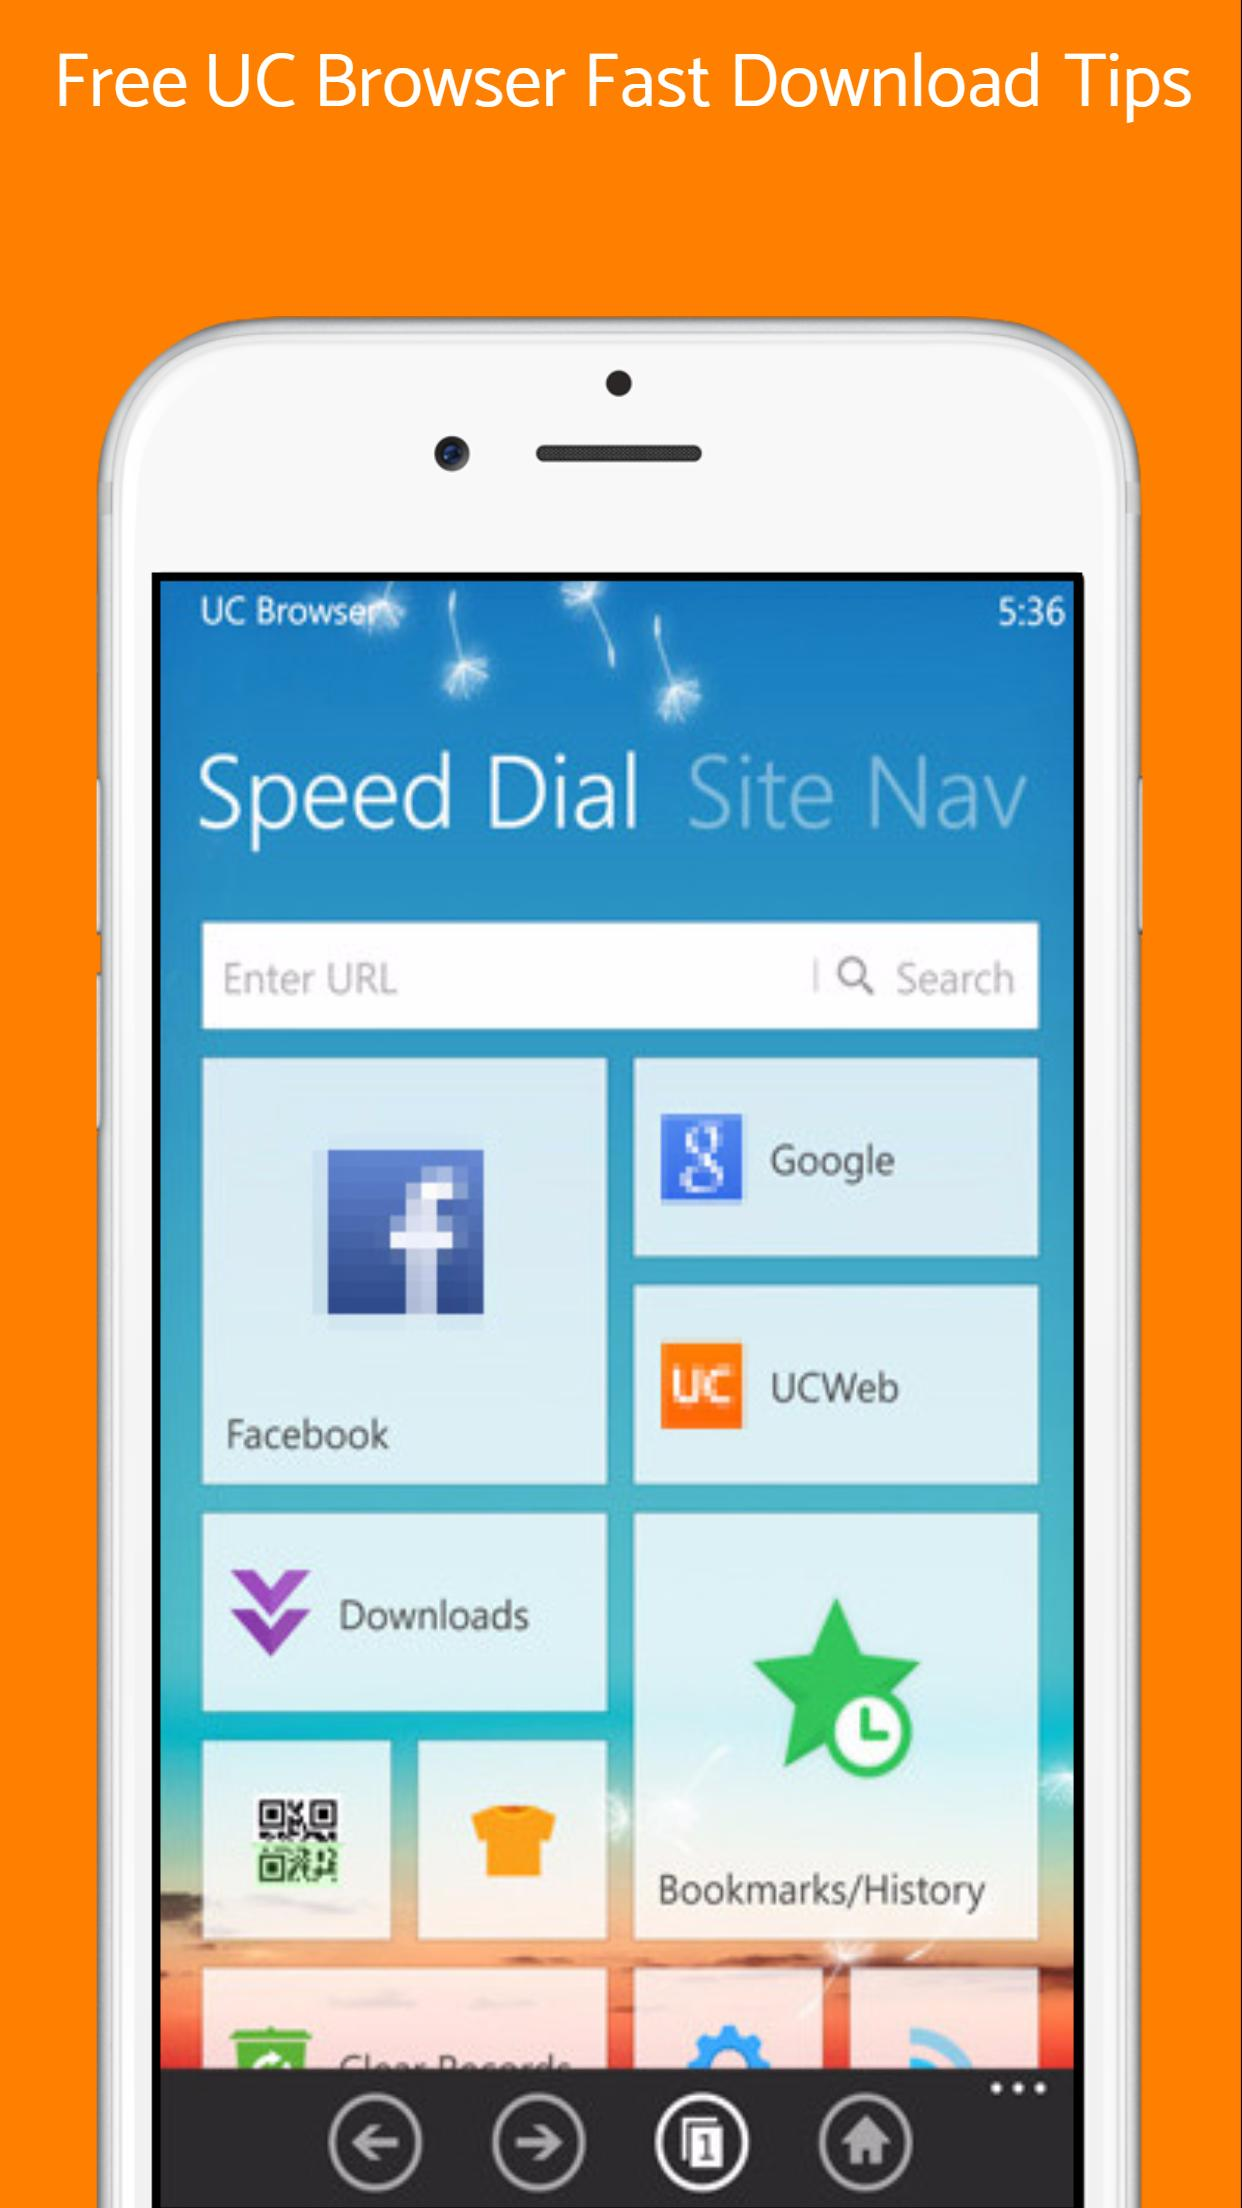 Free UC Browser Fast Download Tips for Android - APK Download